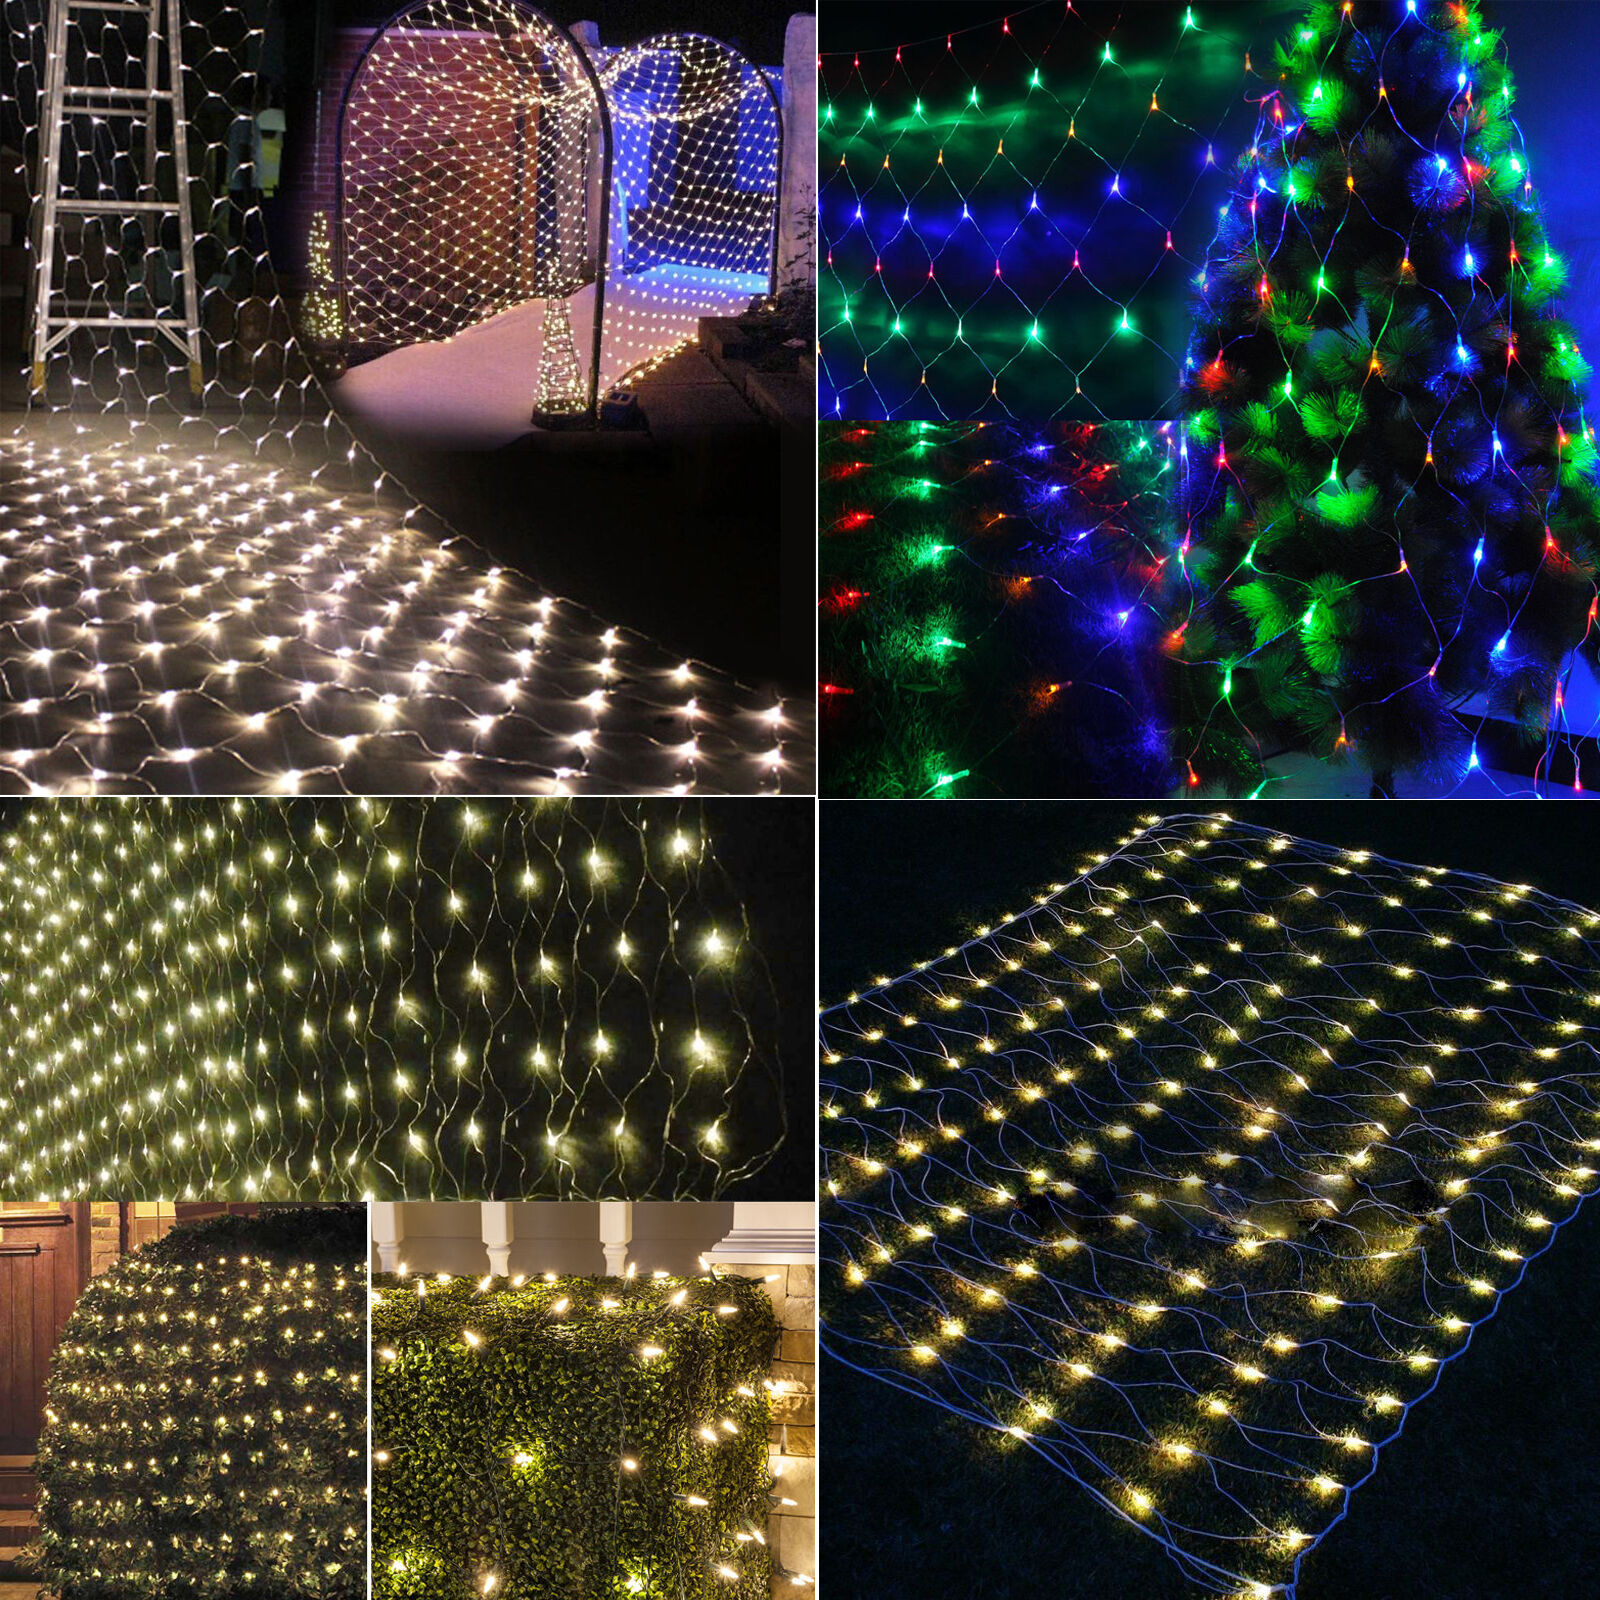 Drape String Lights Ceiling : Christmas Net Lights Fairy String Curtain Mesh Xmas Party Ceiling Lights Decor